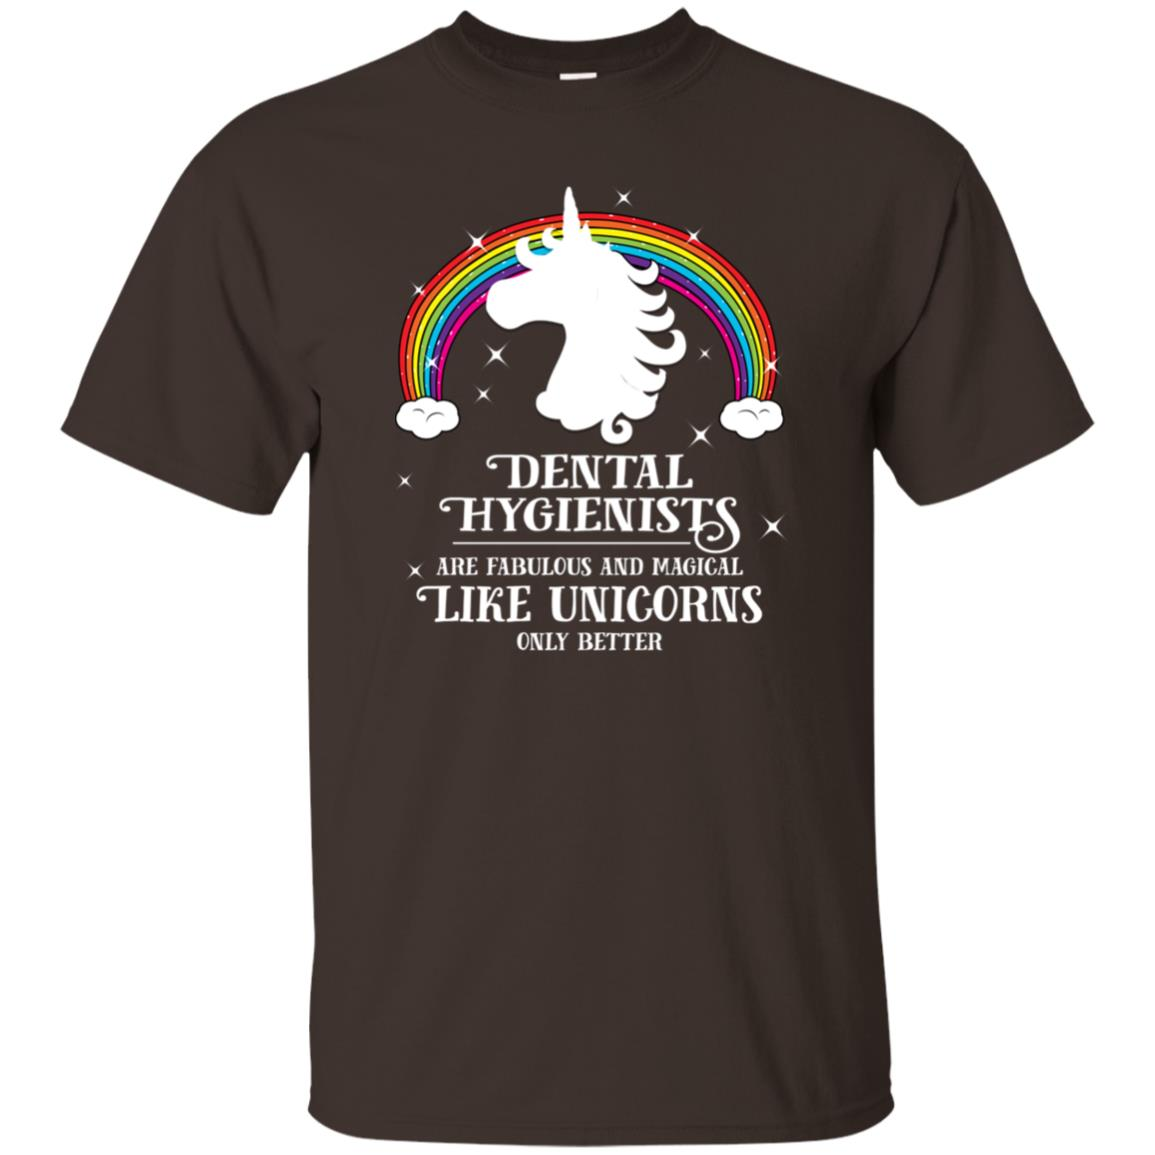 Dental Hygienists Magical Like Unicorns Unisex Short Sleeve